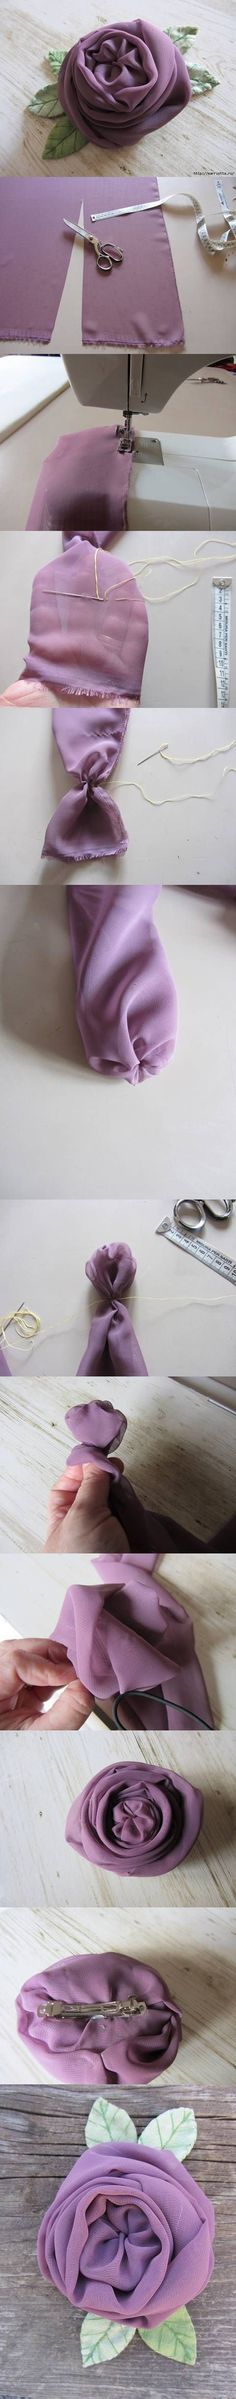 DIY Chiffon English Rose DIY Chiffon English Rose